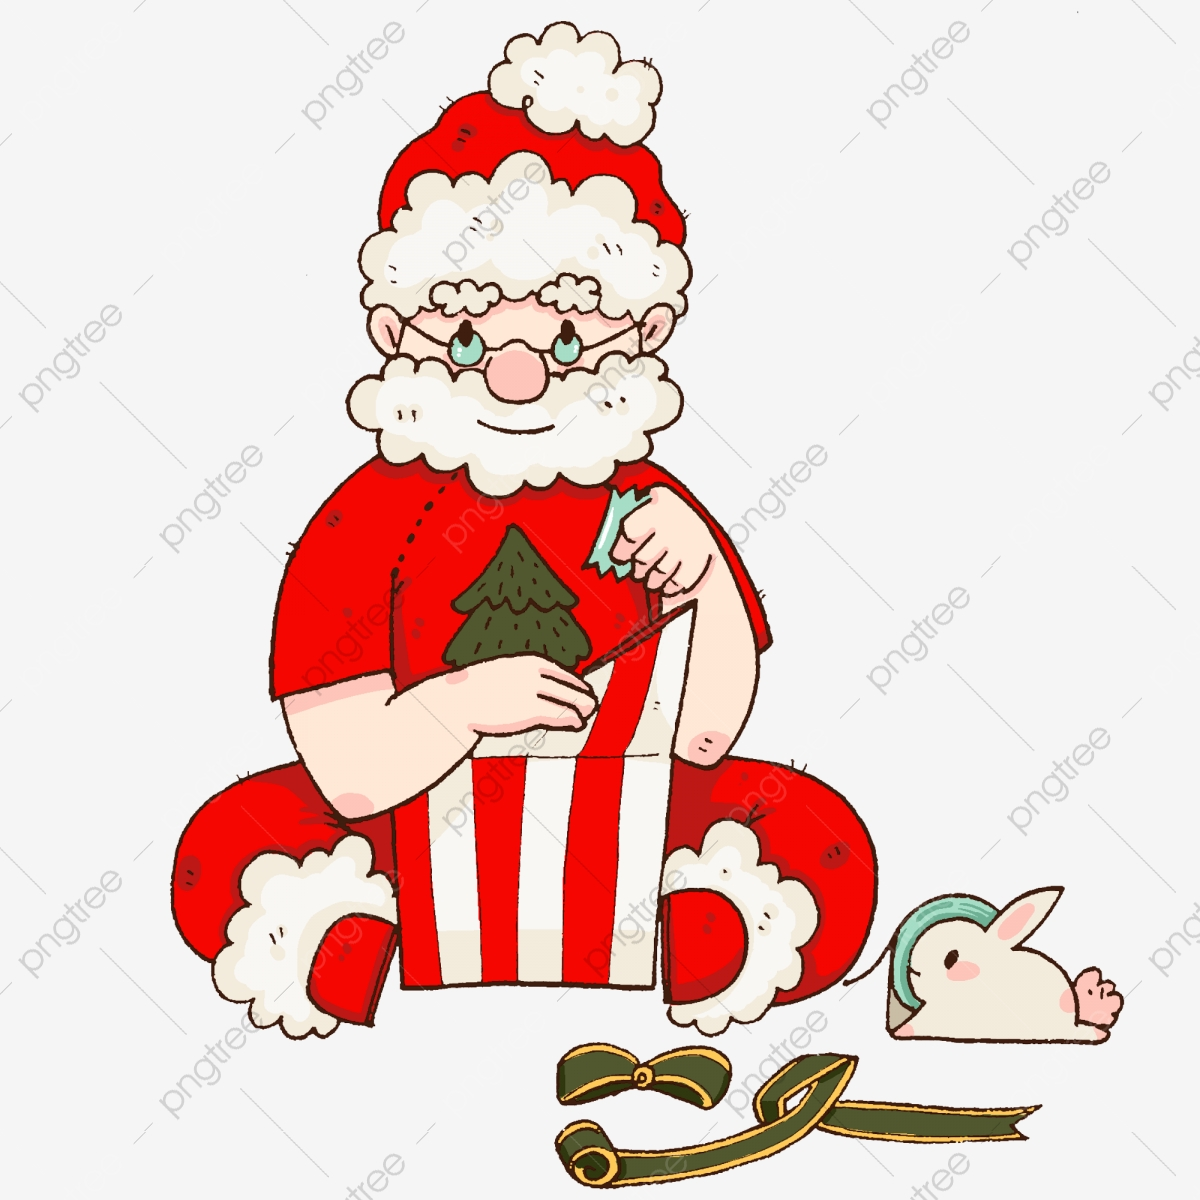 Christmas Character Illustration Red Santa Claus White Rabbit Green.